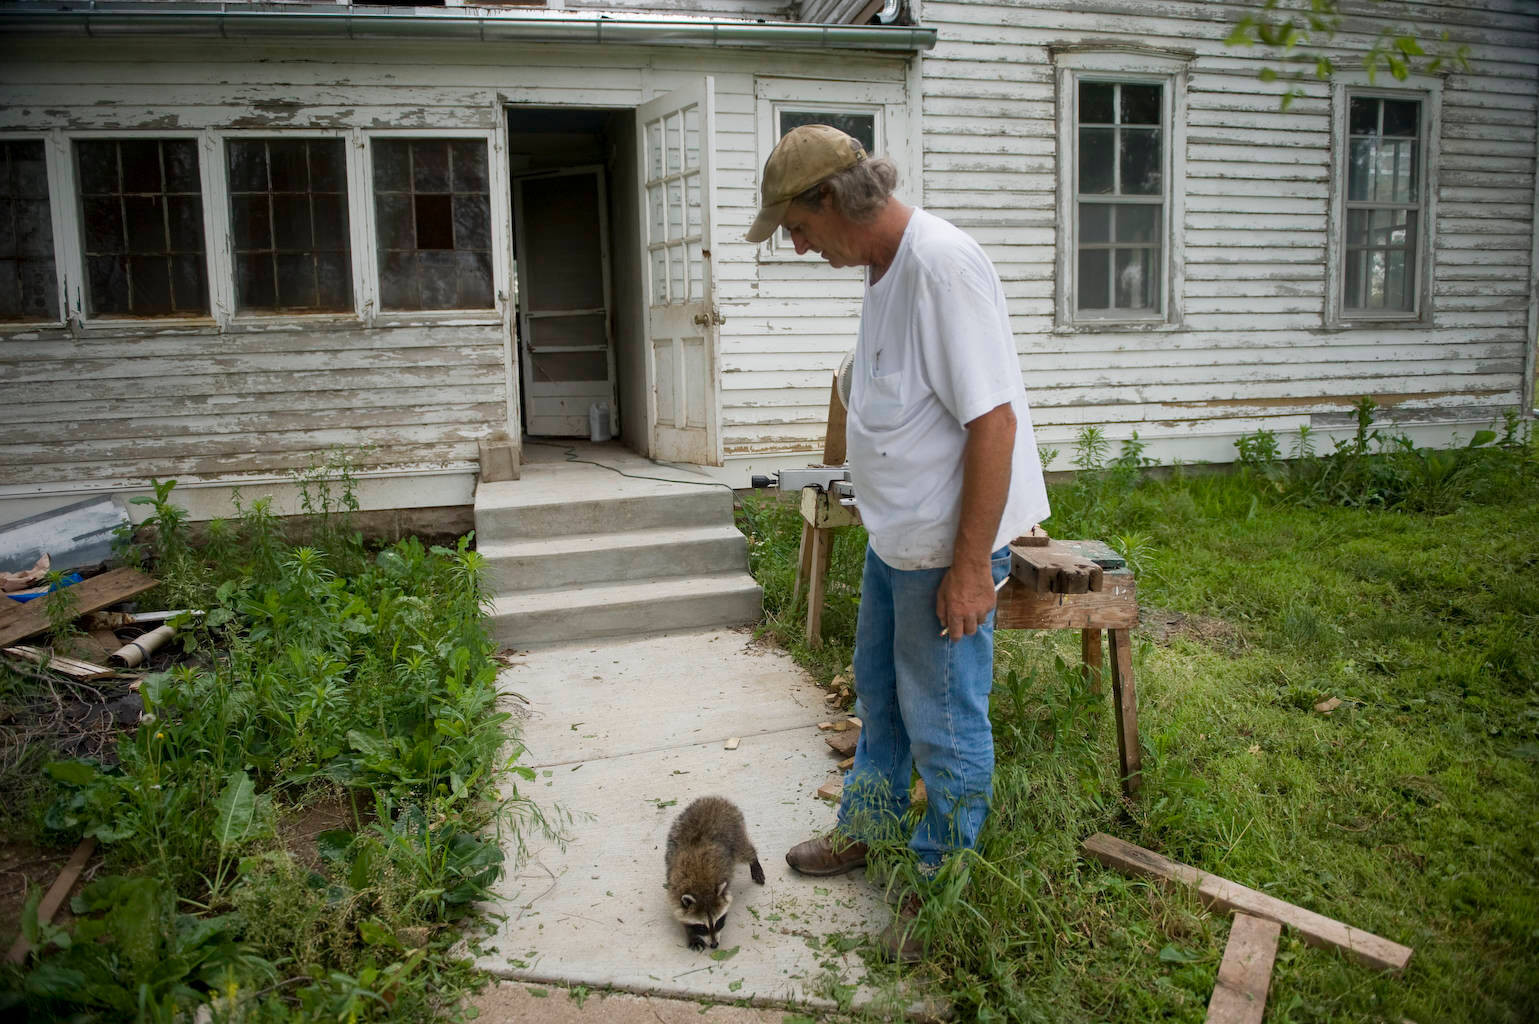 Photo: A man with a baby raccoon at the Dunbar Farm.